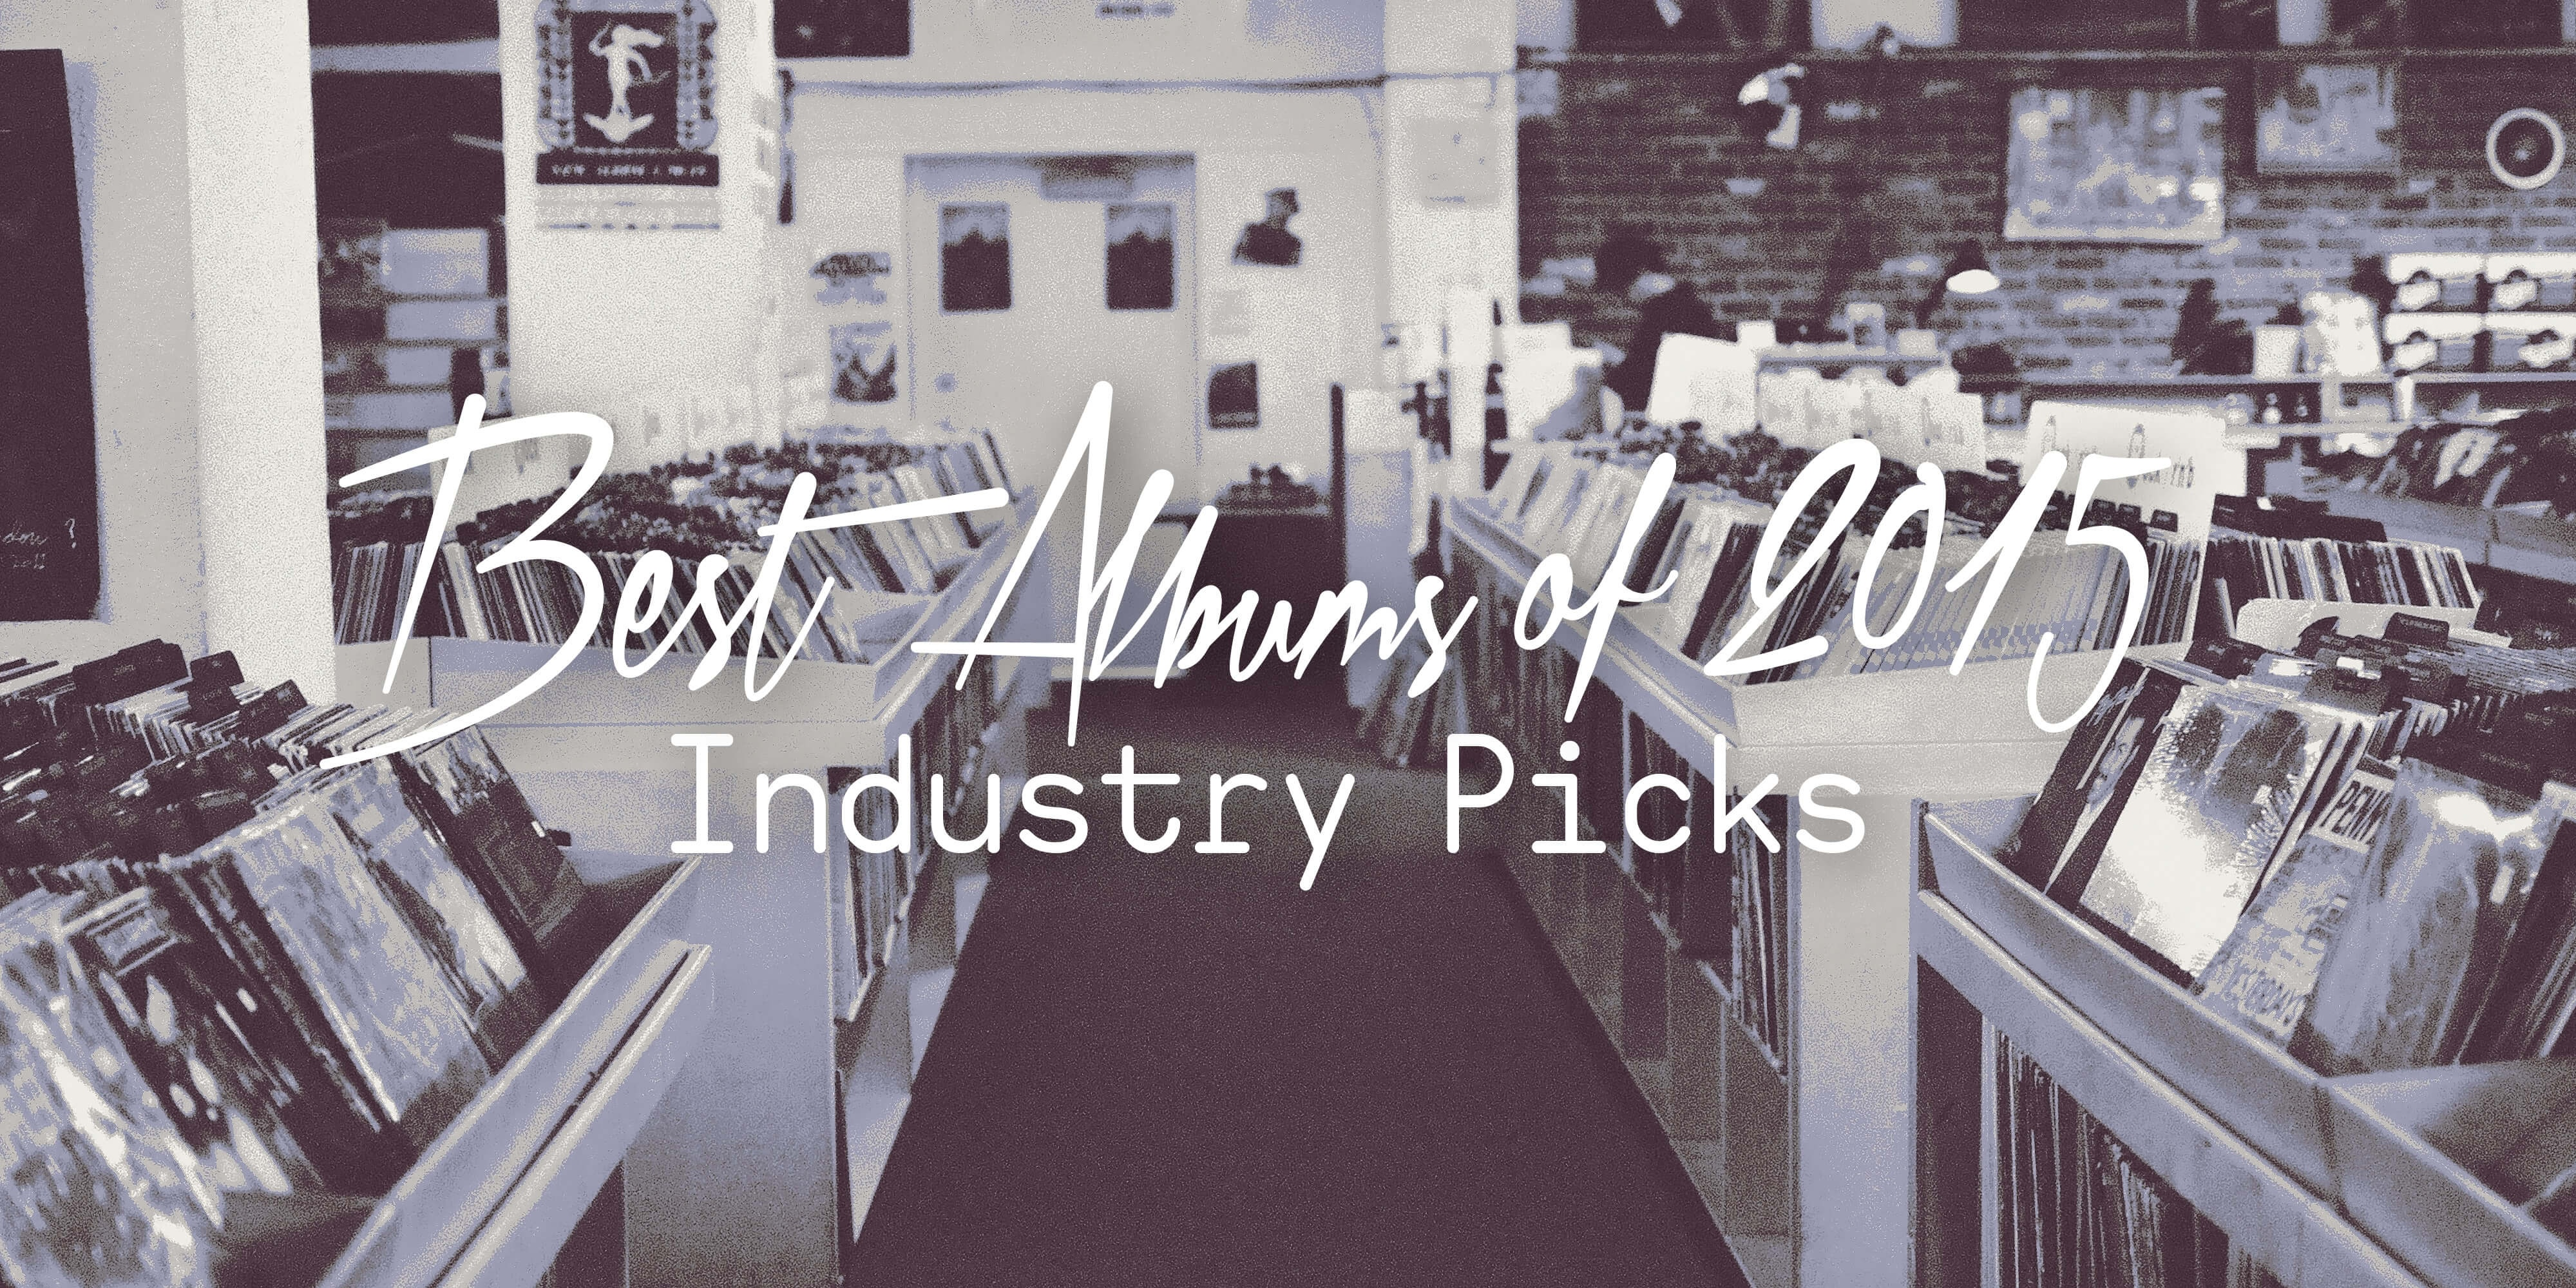 Best Albums of 2015: Industry Picks